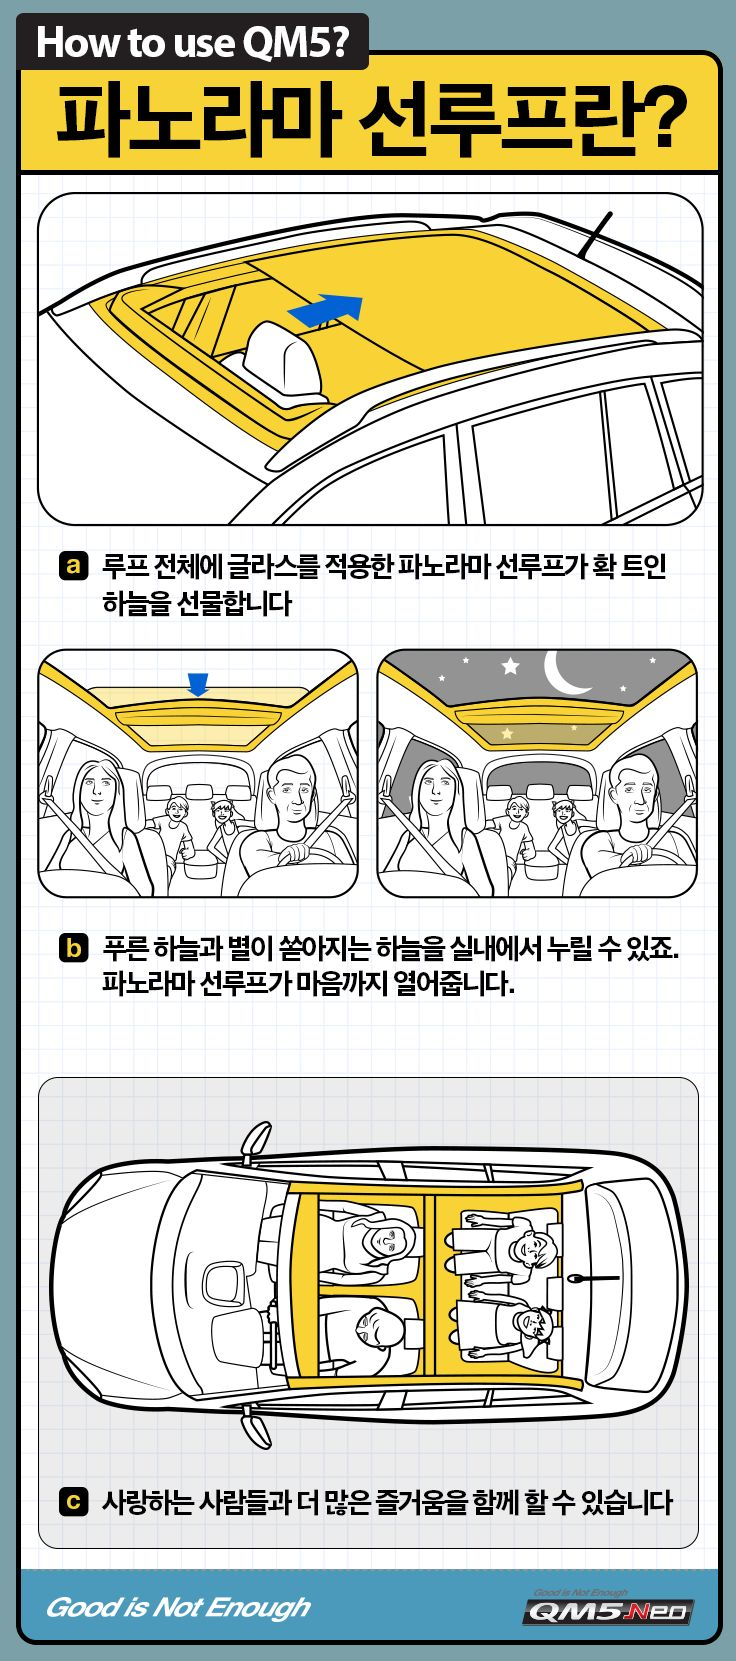 How to Use Panorama Sunroof _QM5 Neo